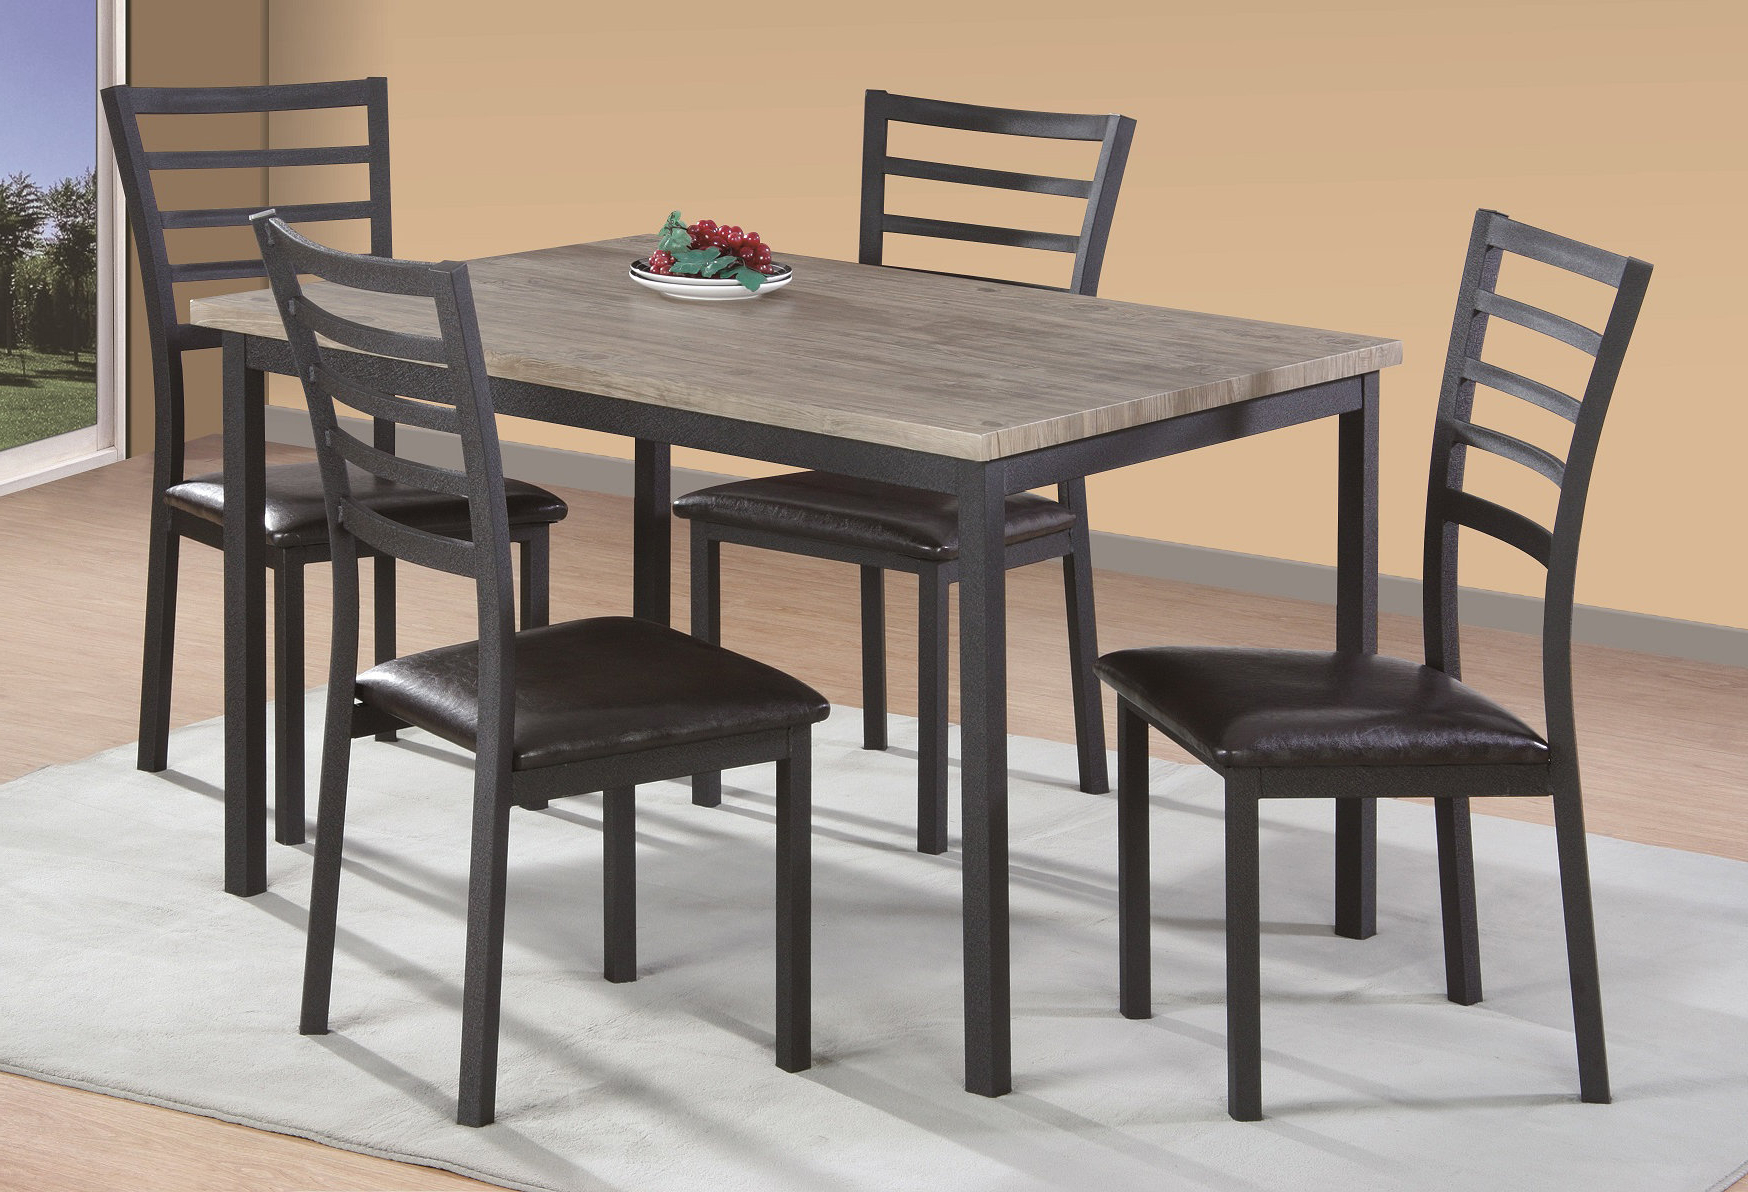 Wayfair Pertaining To Well Liked Taulbee 5 Piece Dining Sets (View 9 of 25)